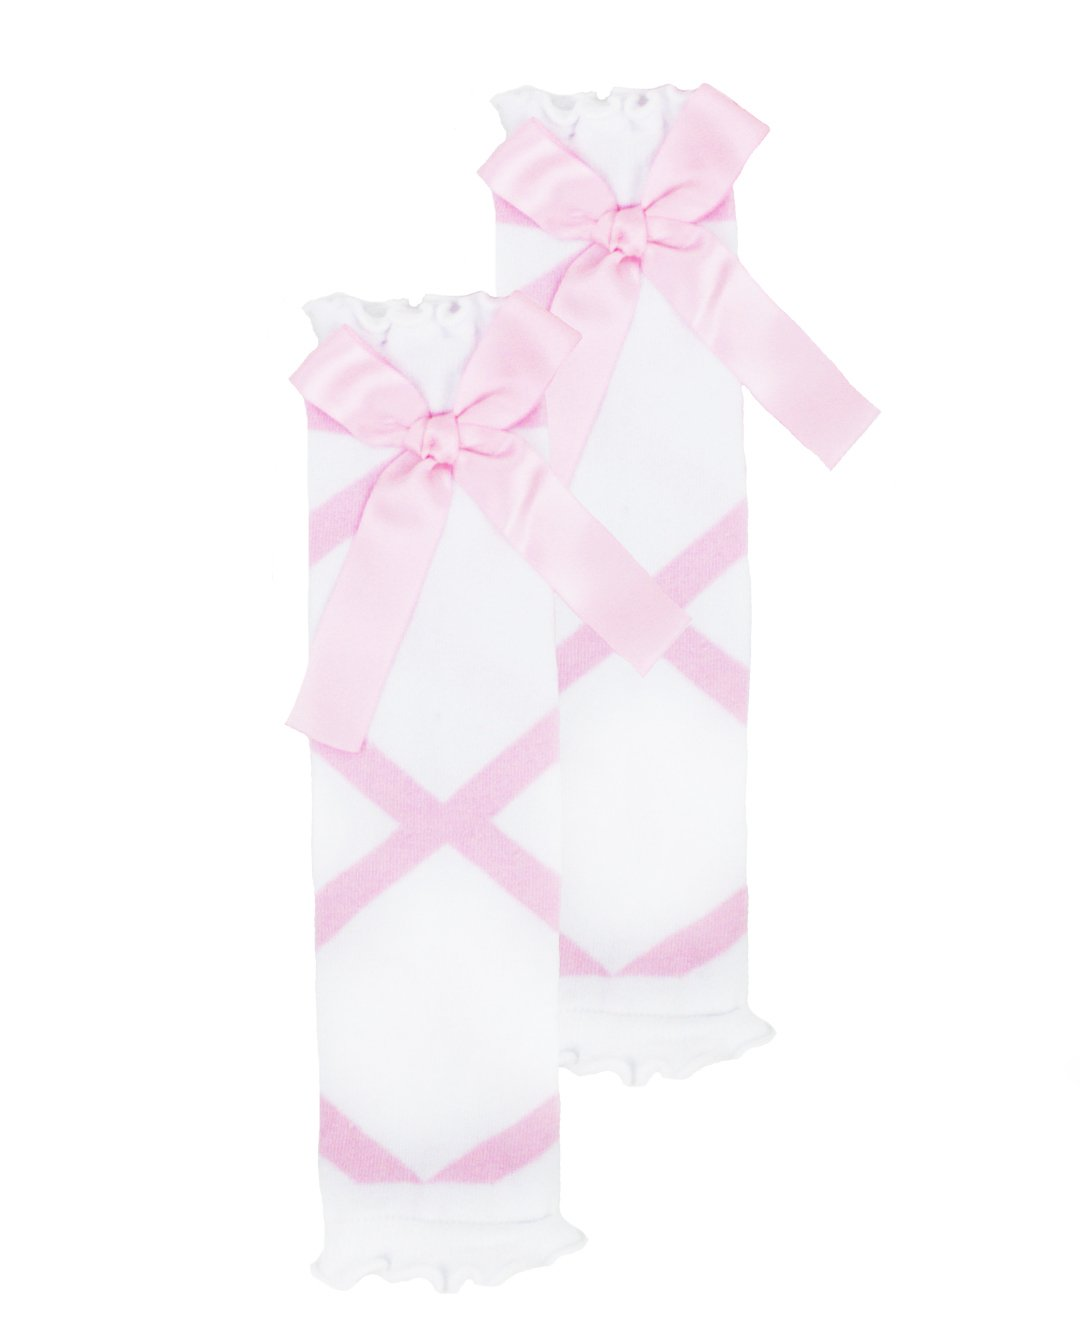 RuffleButts Little Girls Pink and White Ballet Bow Leg Warmers - One Size by RuffleButts